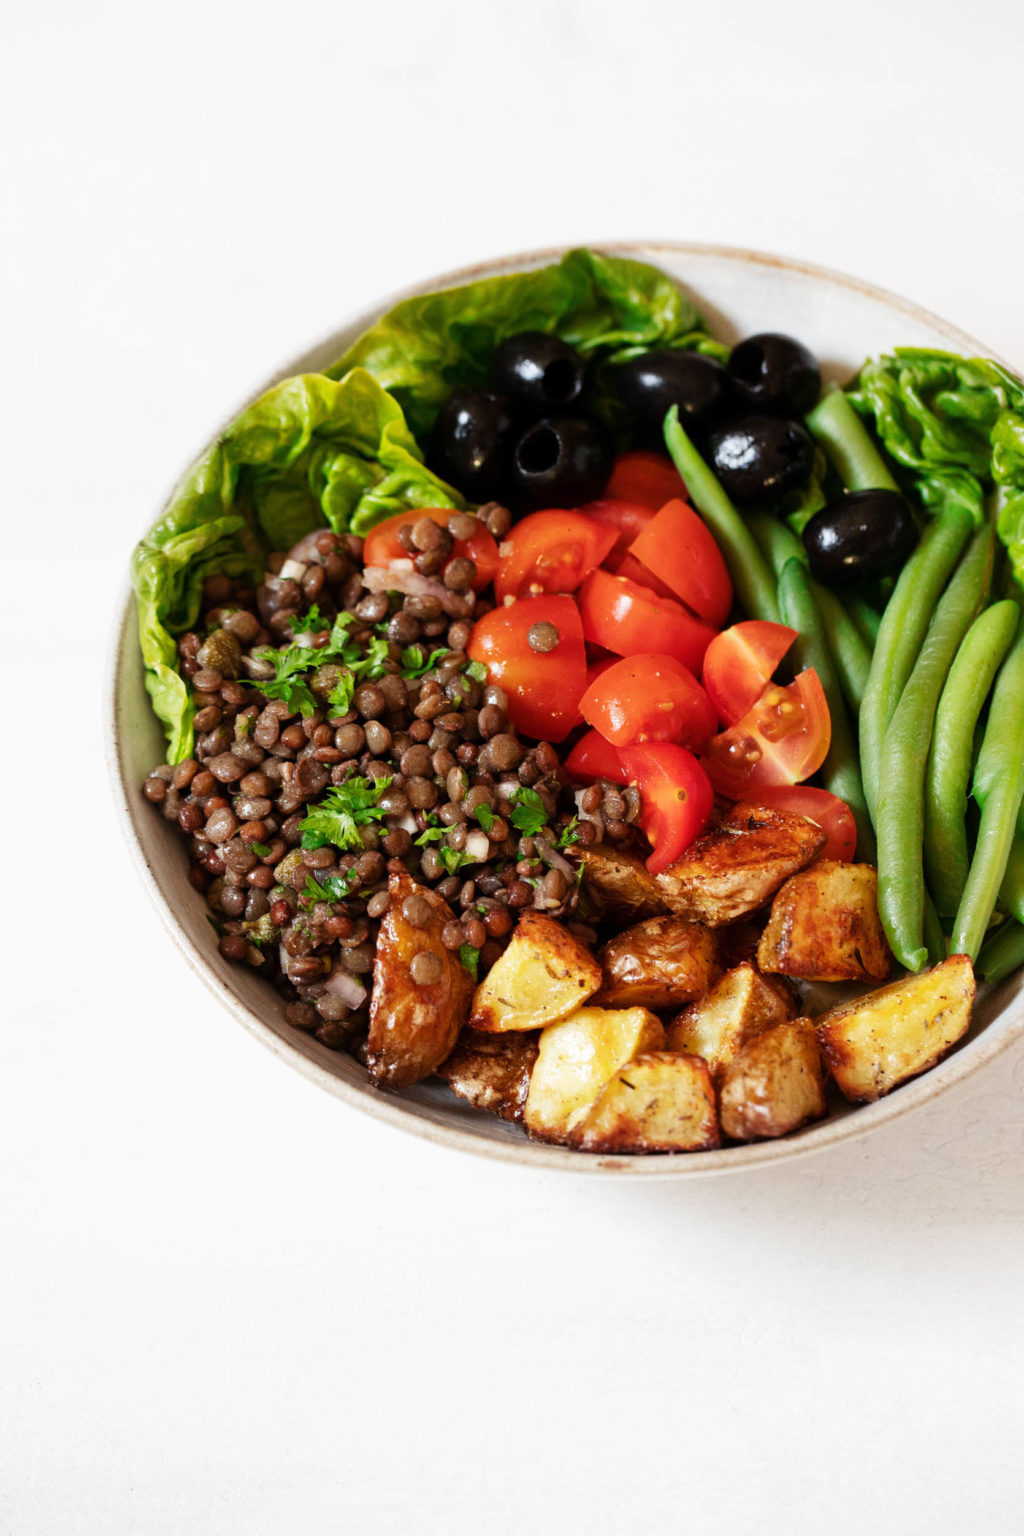 A white bowl has been piled with cooked French lentils, roasted potatoes, tomatoes, olives, and green beans.